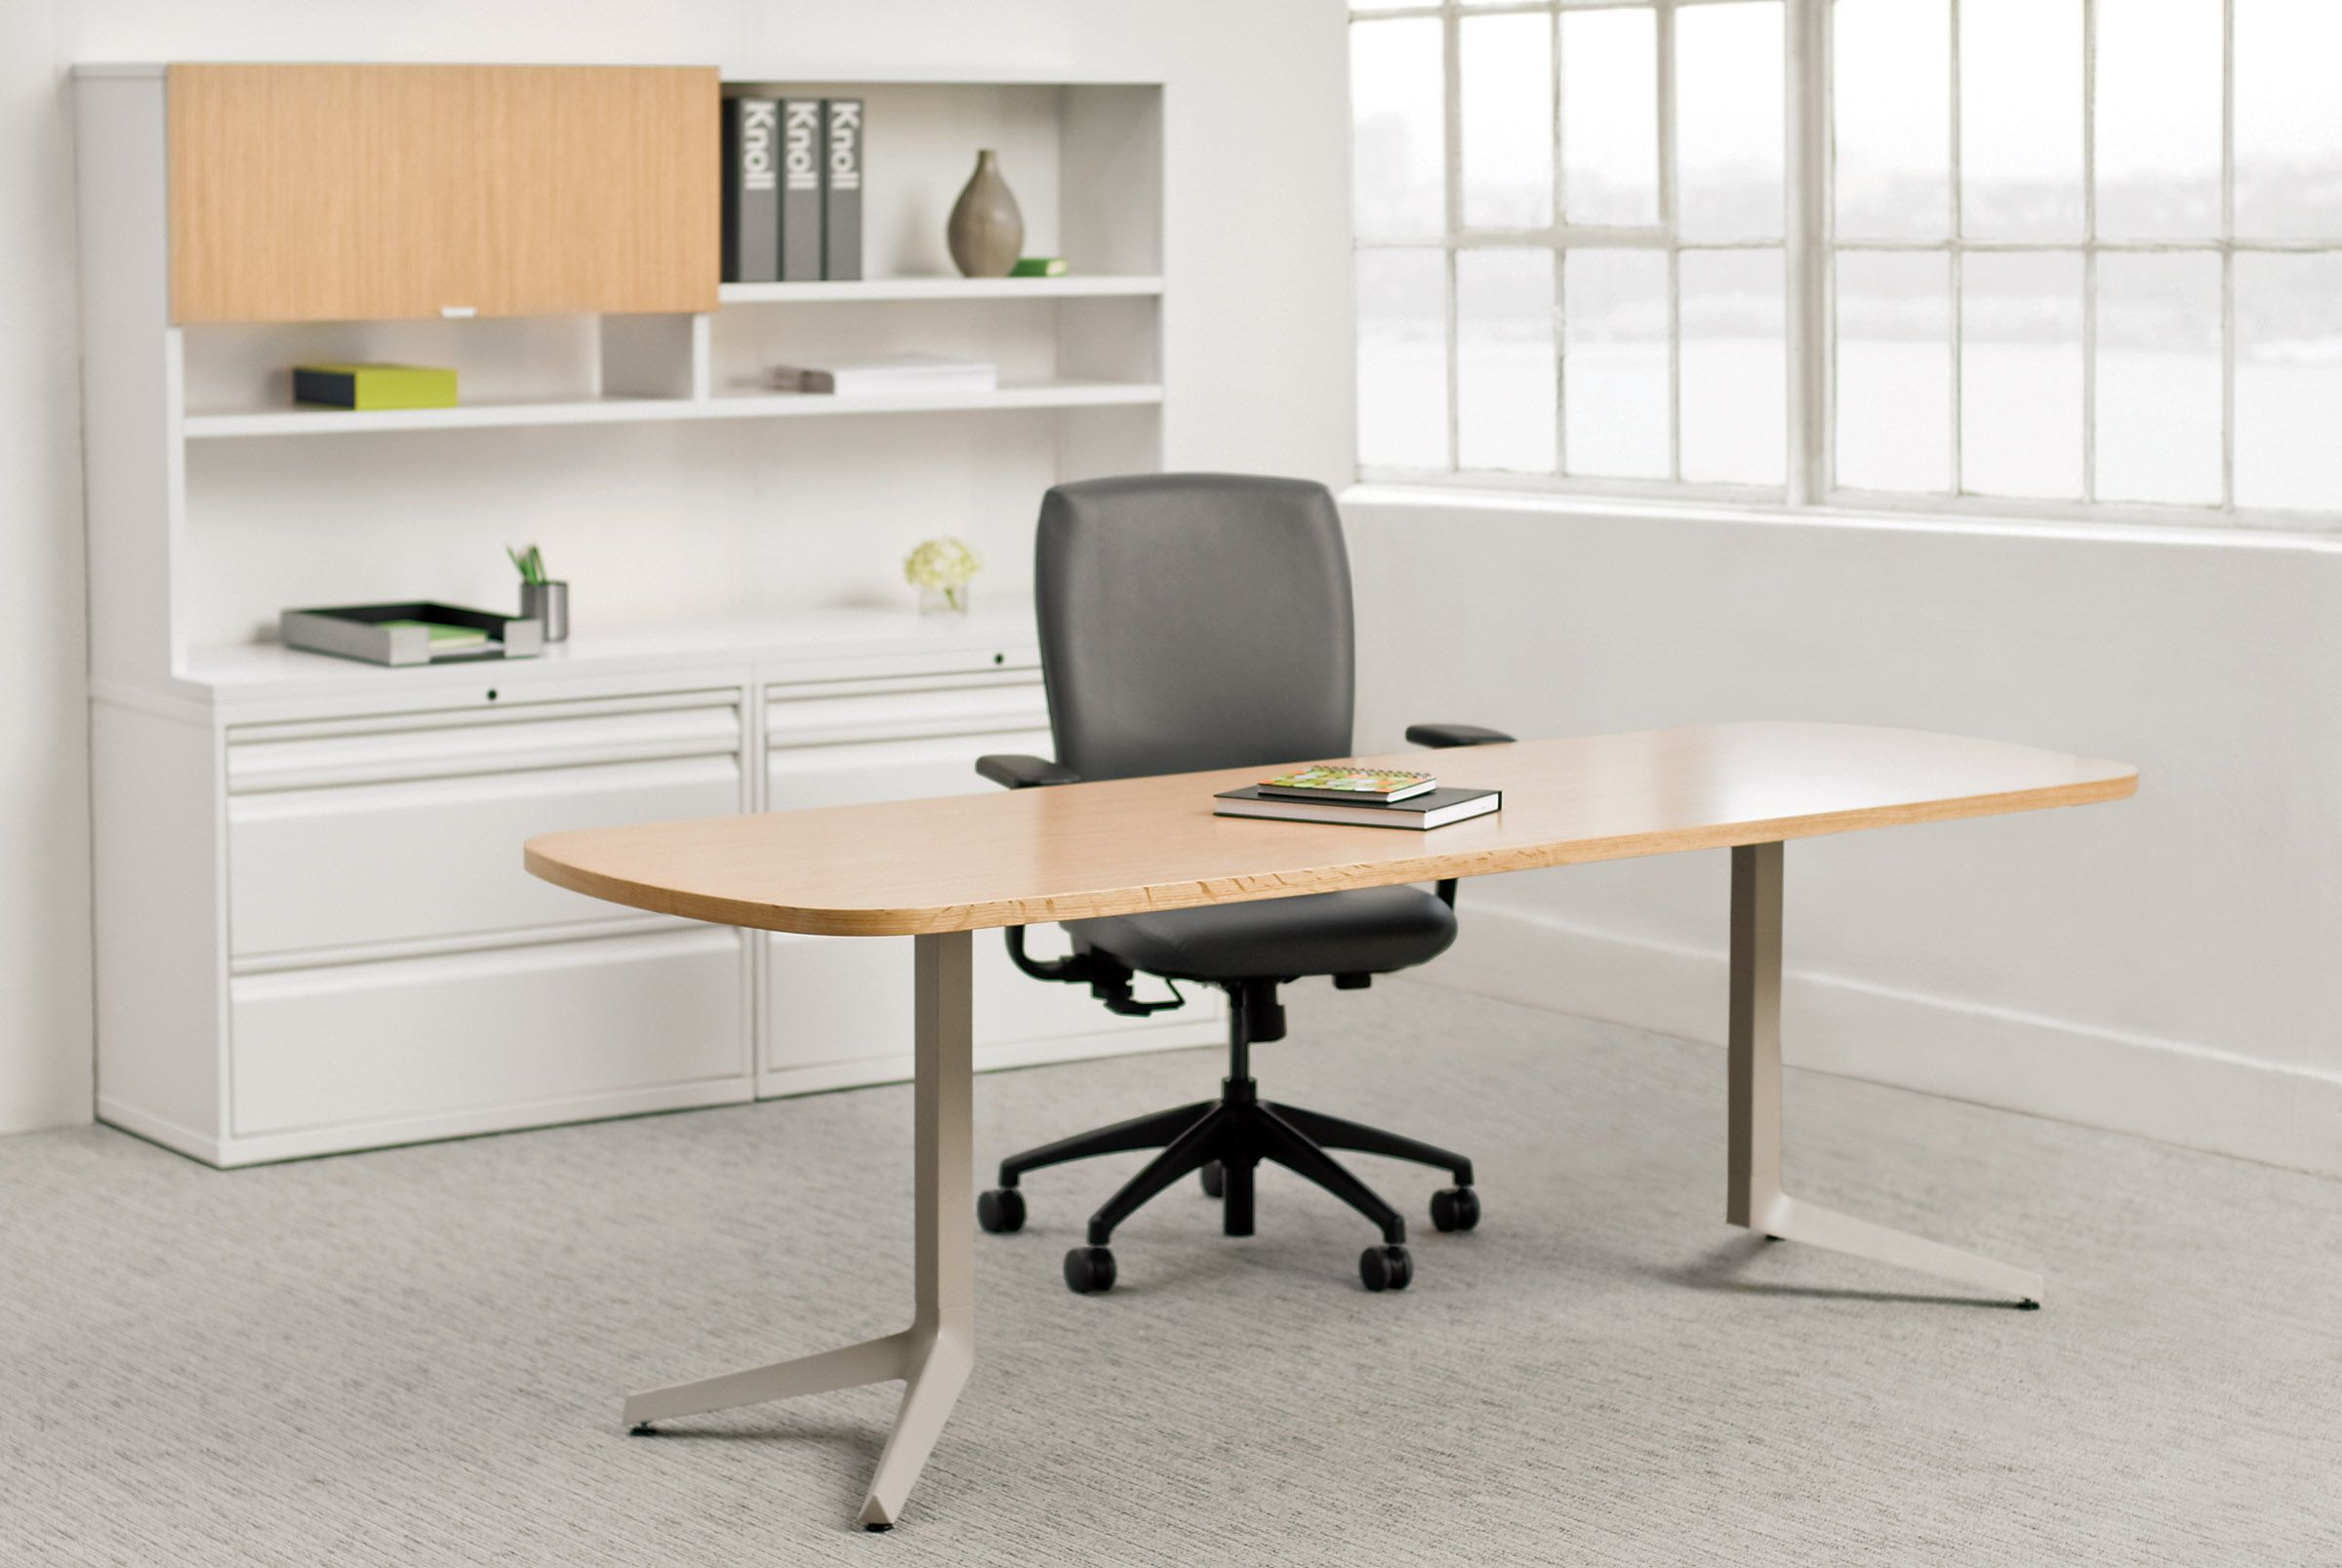 office furniture for small spaces modular image result for office space ideas the ideal